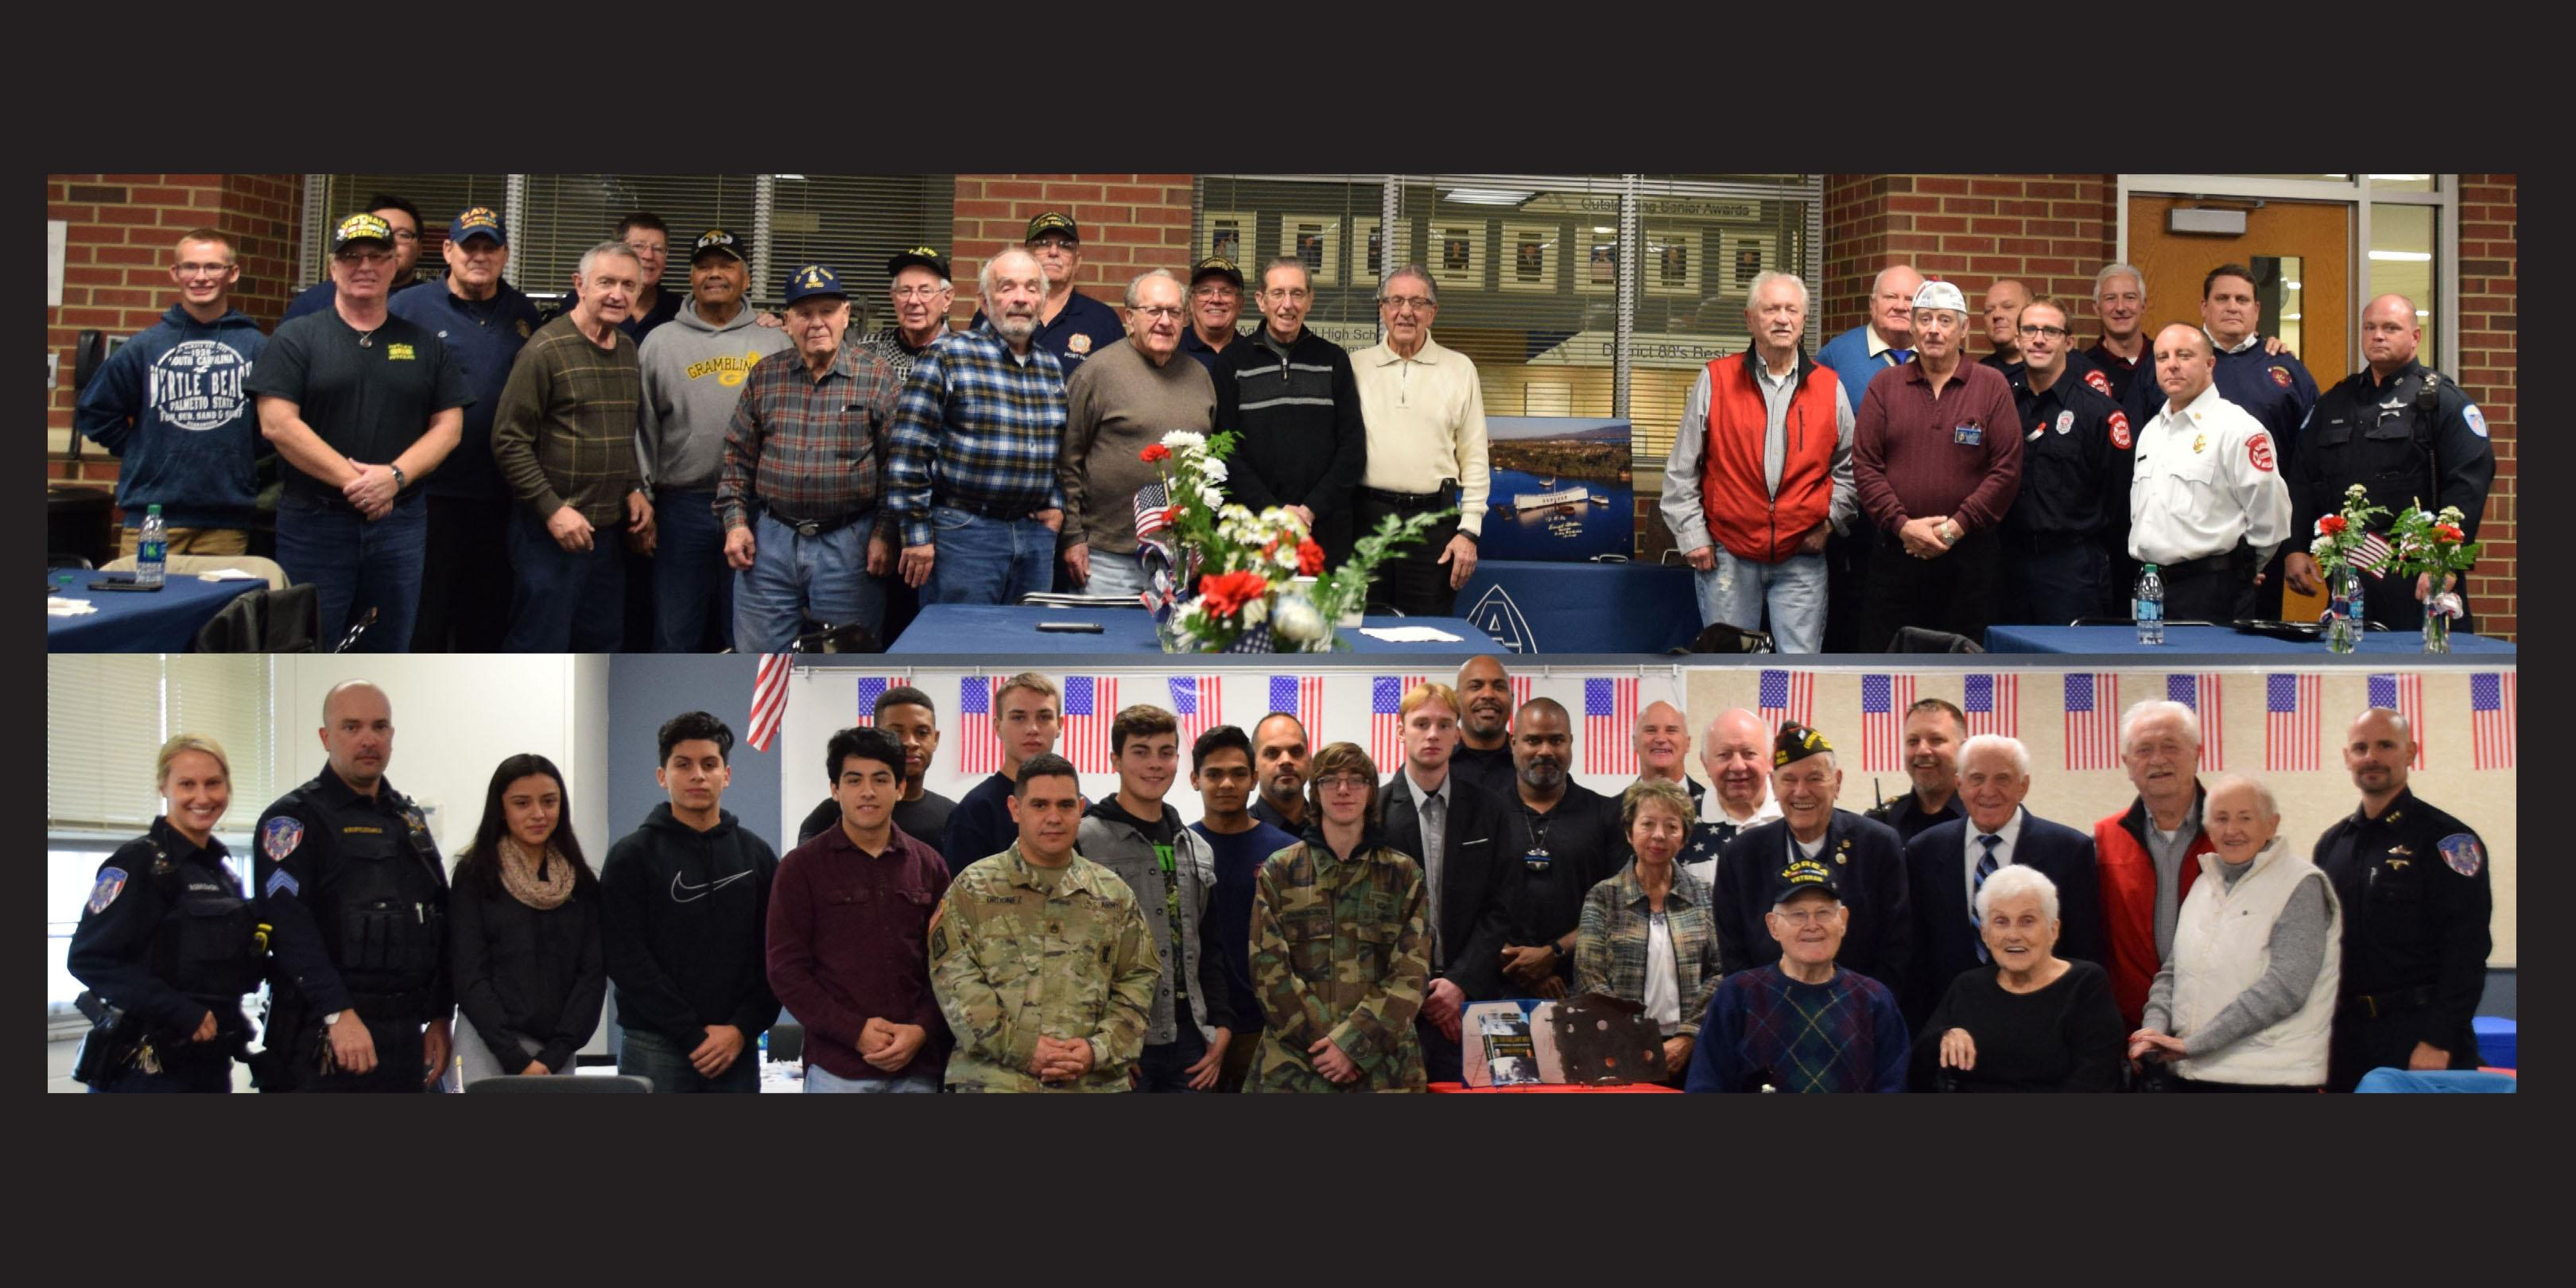 Addison Trail and Willowbrook honor veterans in recognition of Veterans Day